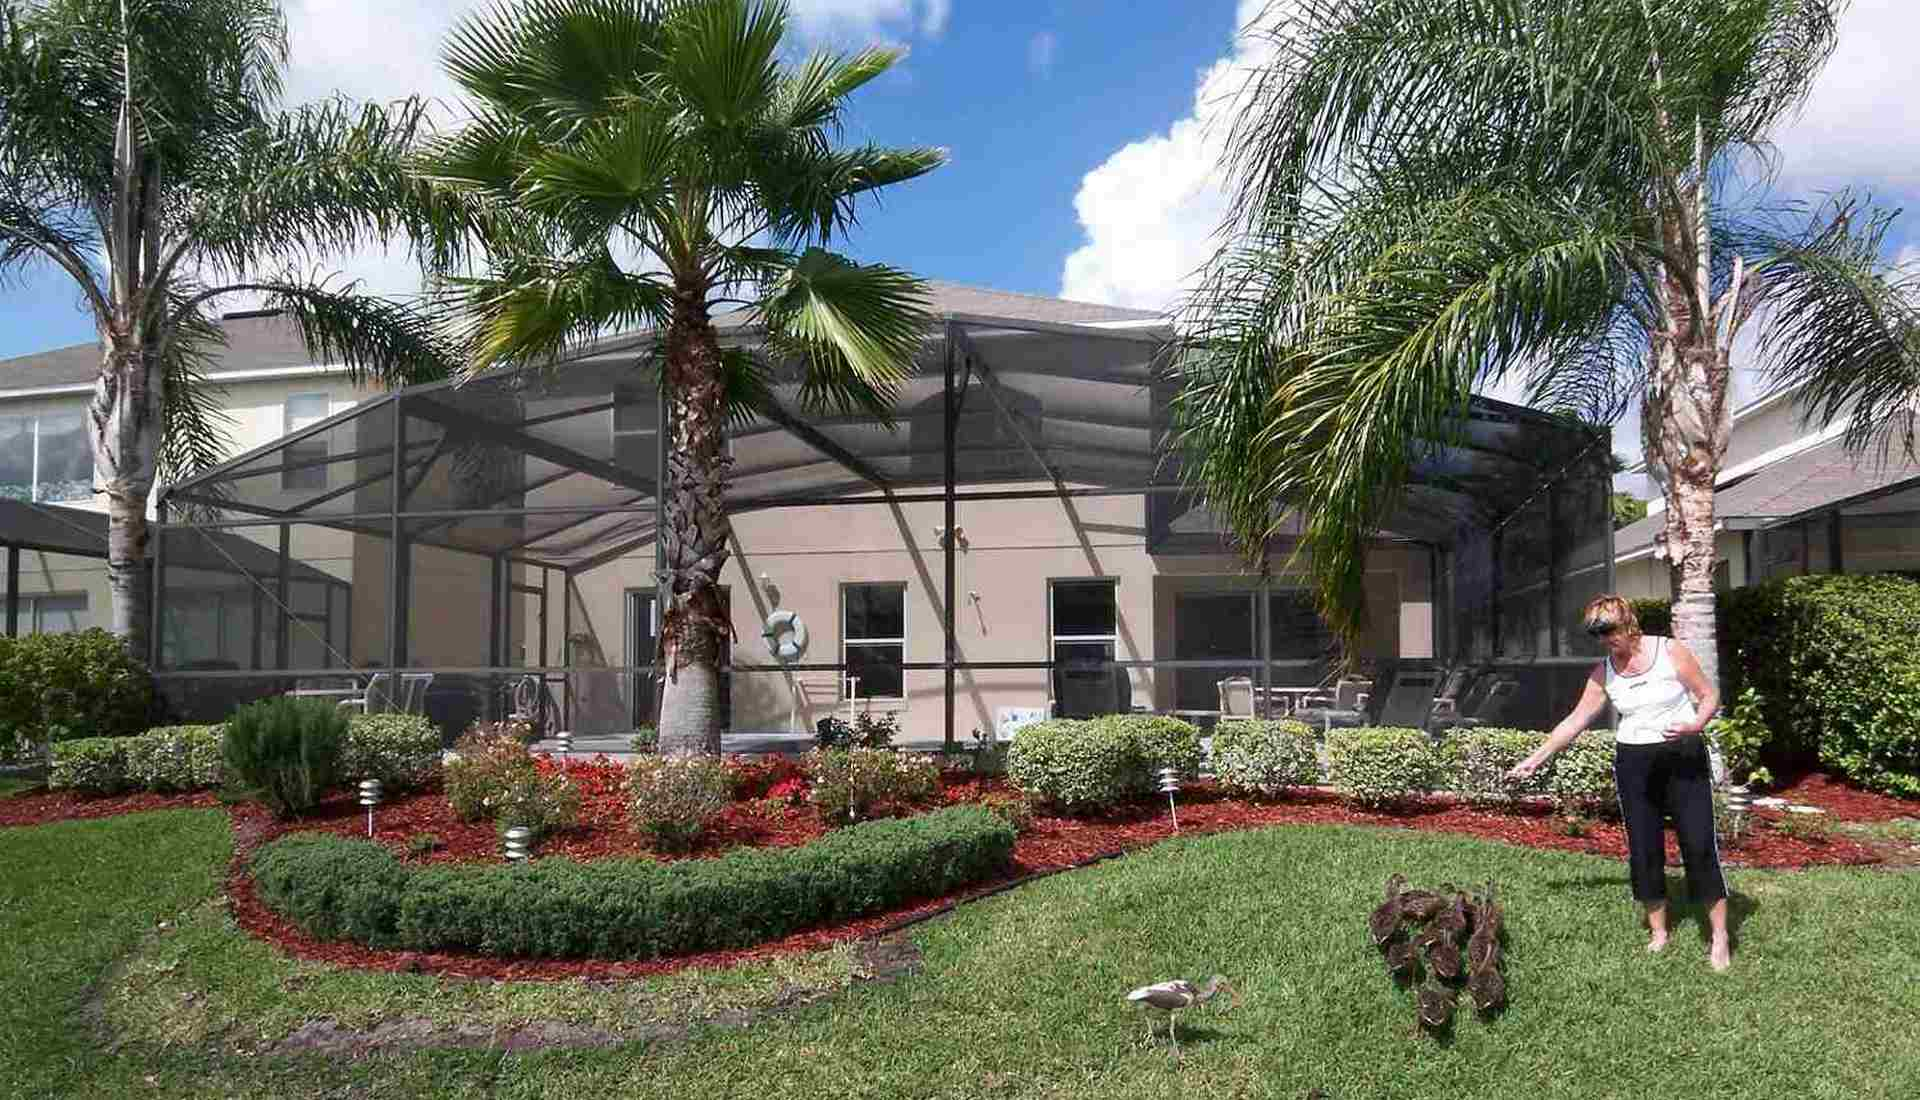 Best Value Vacation Home In Orlando Kissimmee